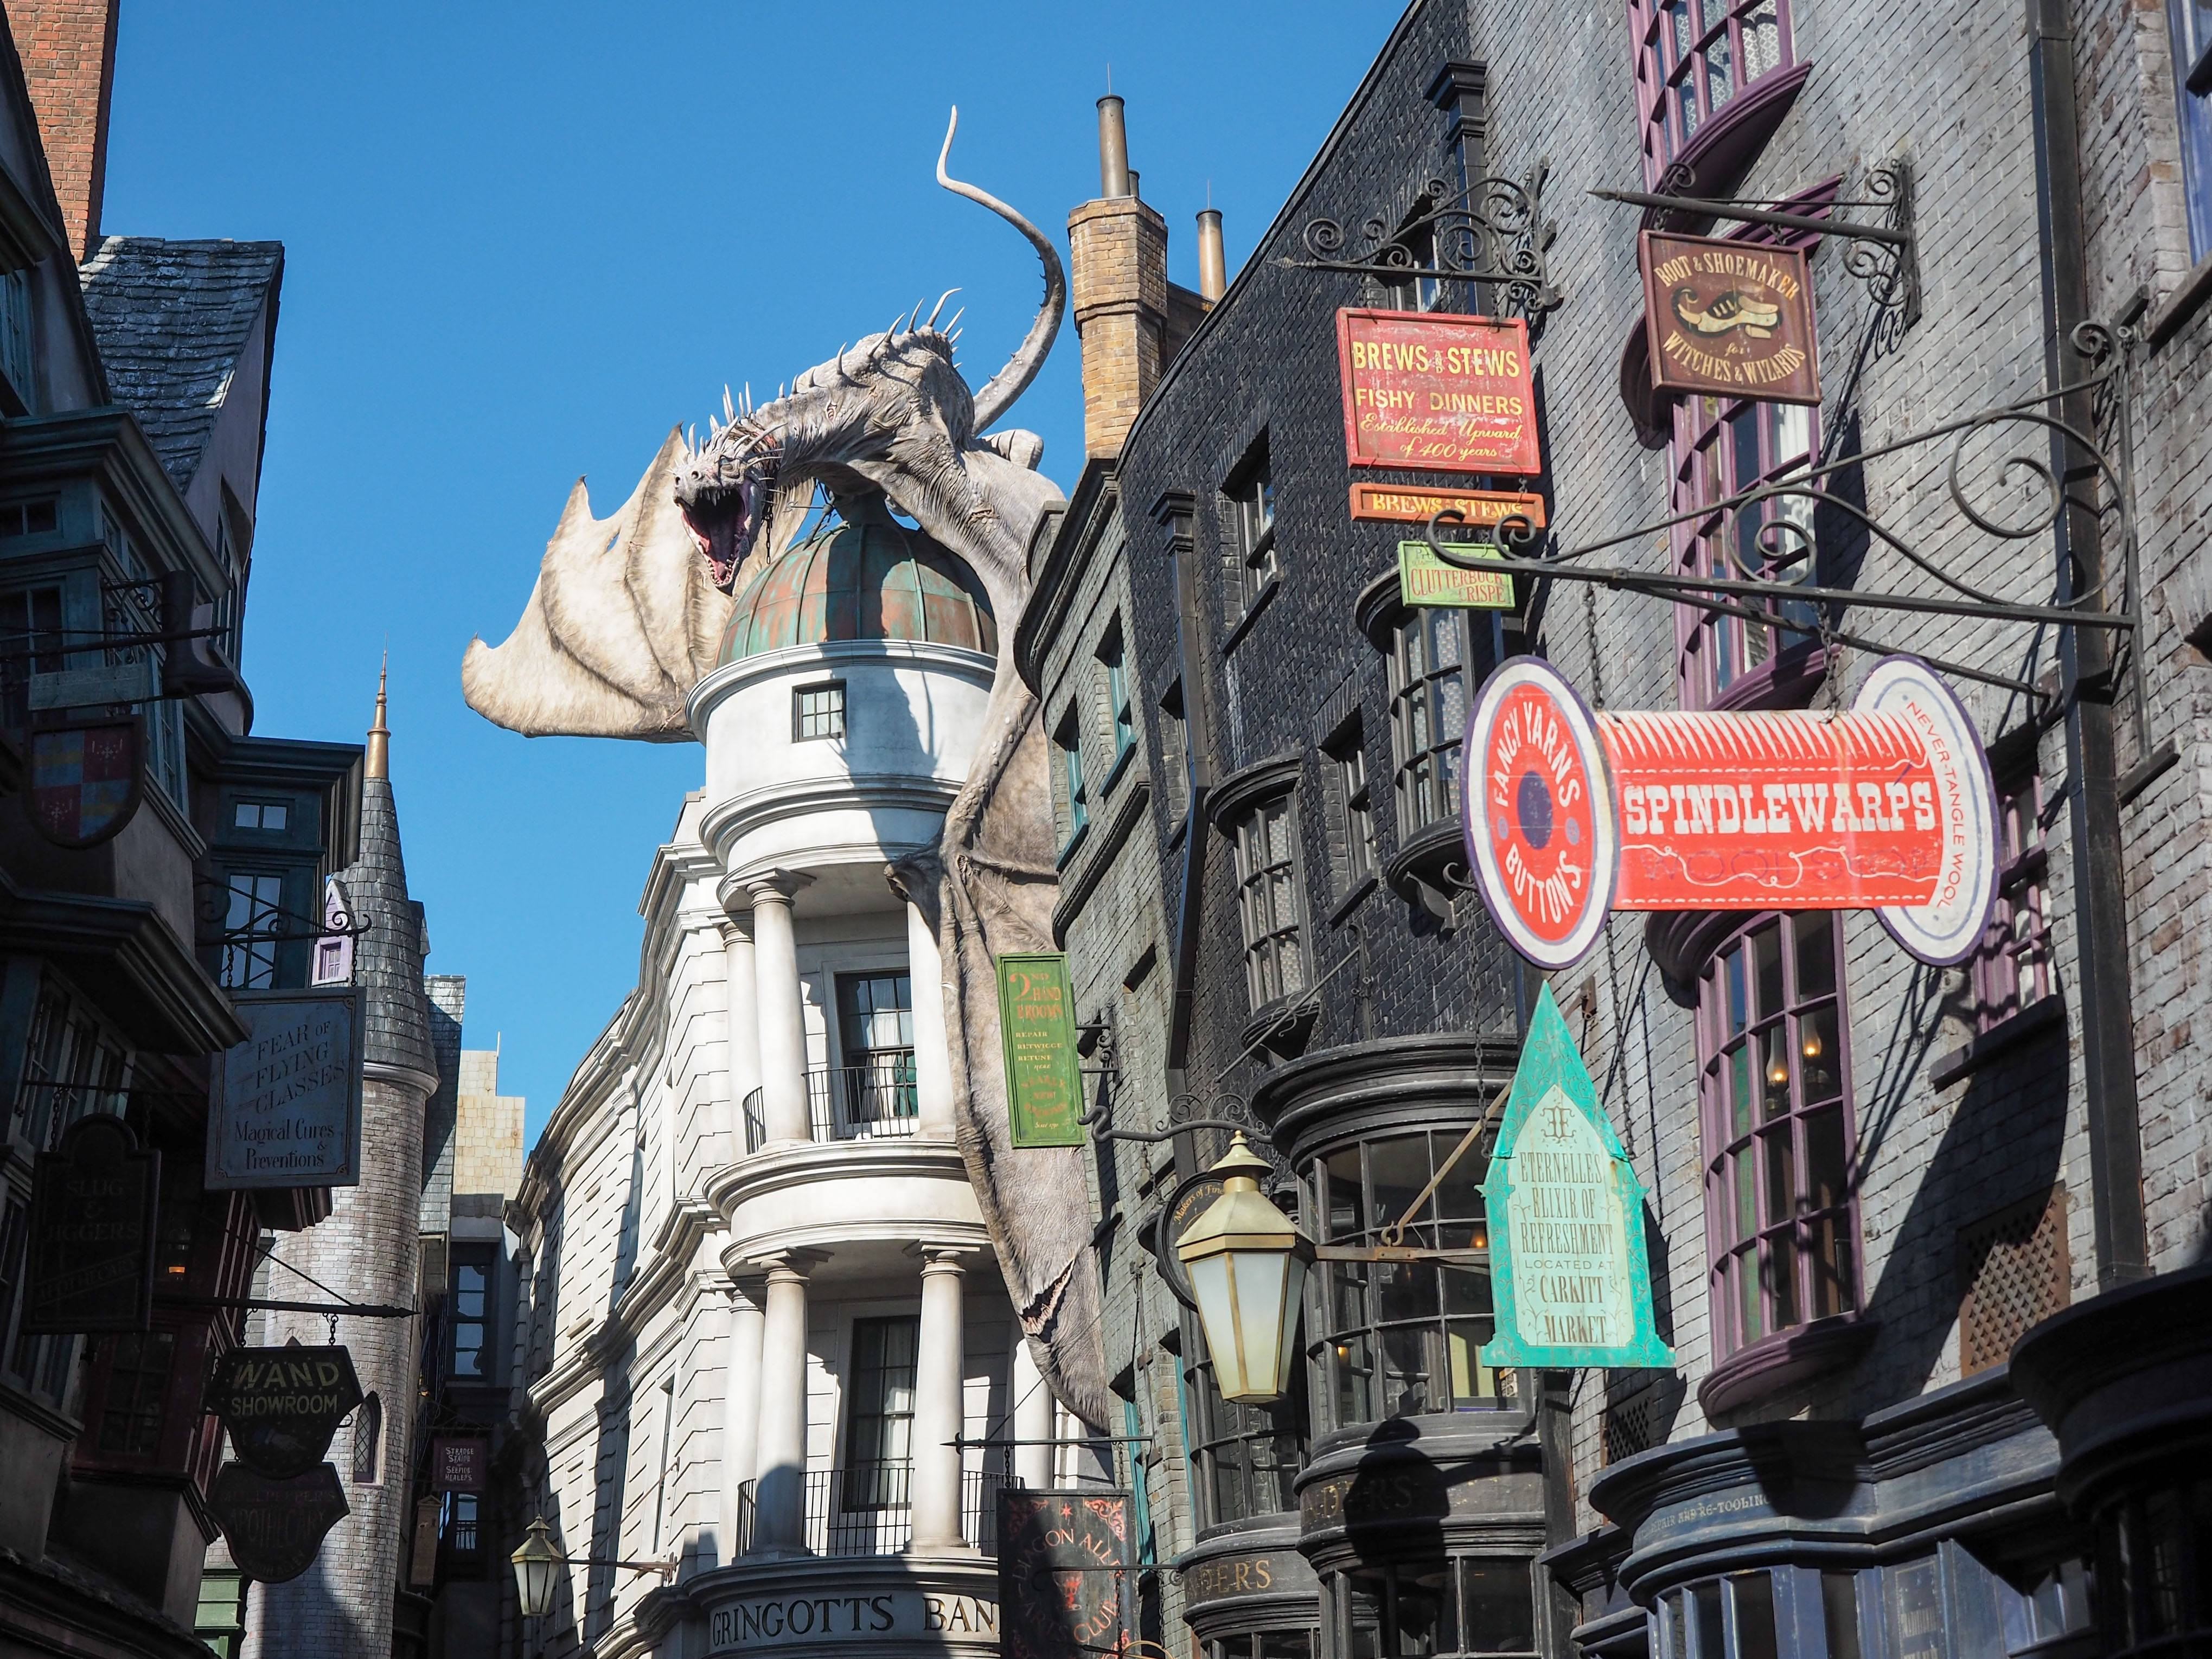 Diagon Alley at the Wizarding World of Harry Potter at Universal Orlando